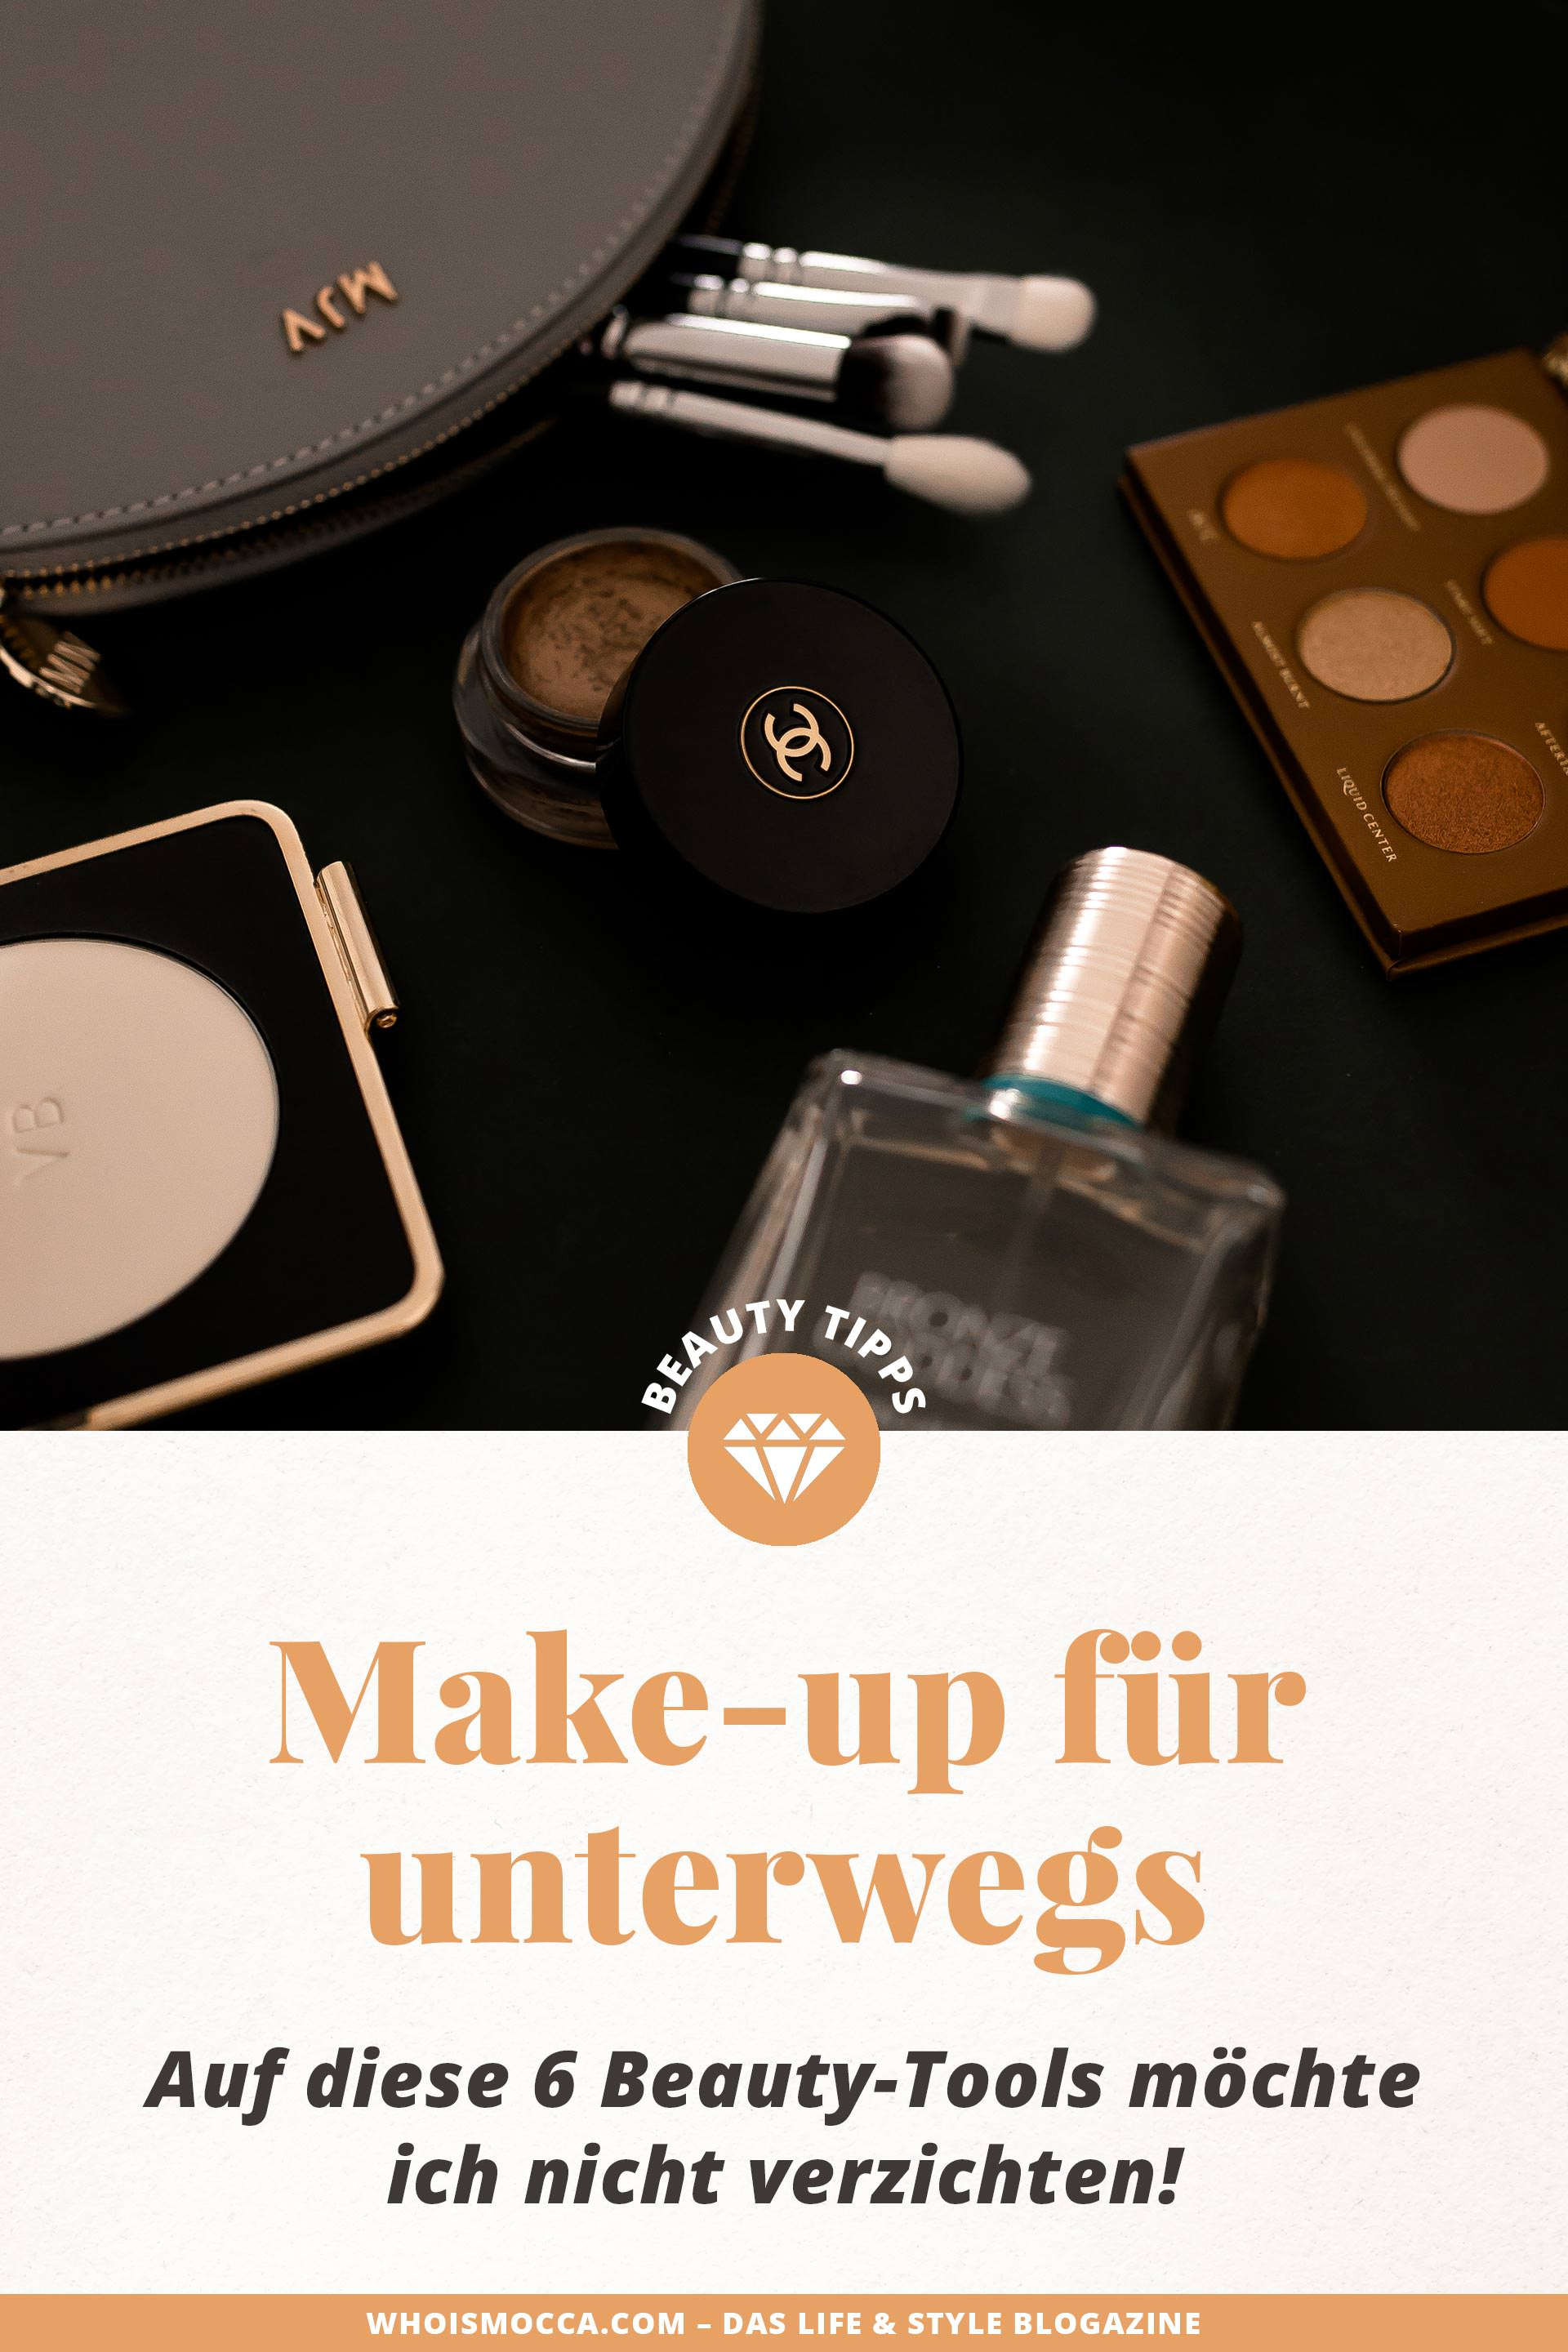 enthält unbeauftragte Werbung, Make up für unterwegs, make up must haves, make up must haves für anfänger, make up pinsel für unterwegs, make up unterwegs auffrischen, make up tasche unterwegs, make up set für unterwegs, schminke für unterwegs, make up to go, make up survival kit, puder für glänzende haut, Erfahrungsbericht, Beauty Tipps und Tricks, www.whoismocca.com #beautyblogger #makeup #zoeva #chanel #bronzegoddess #beautytipps #review